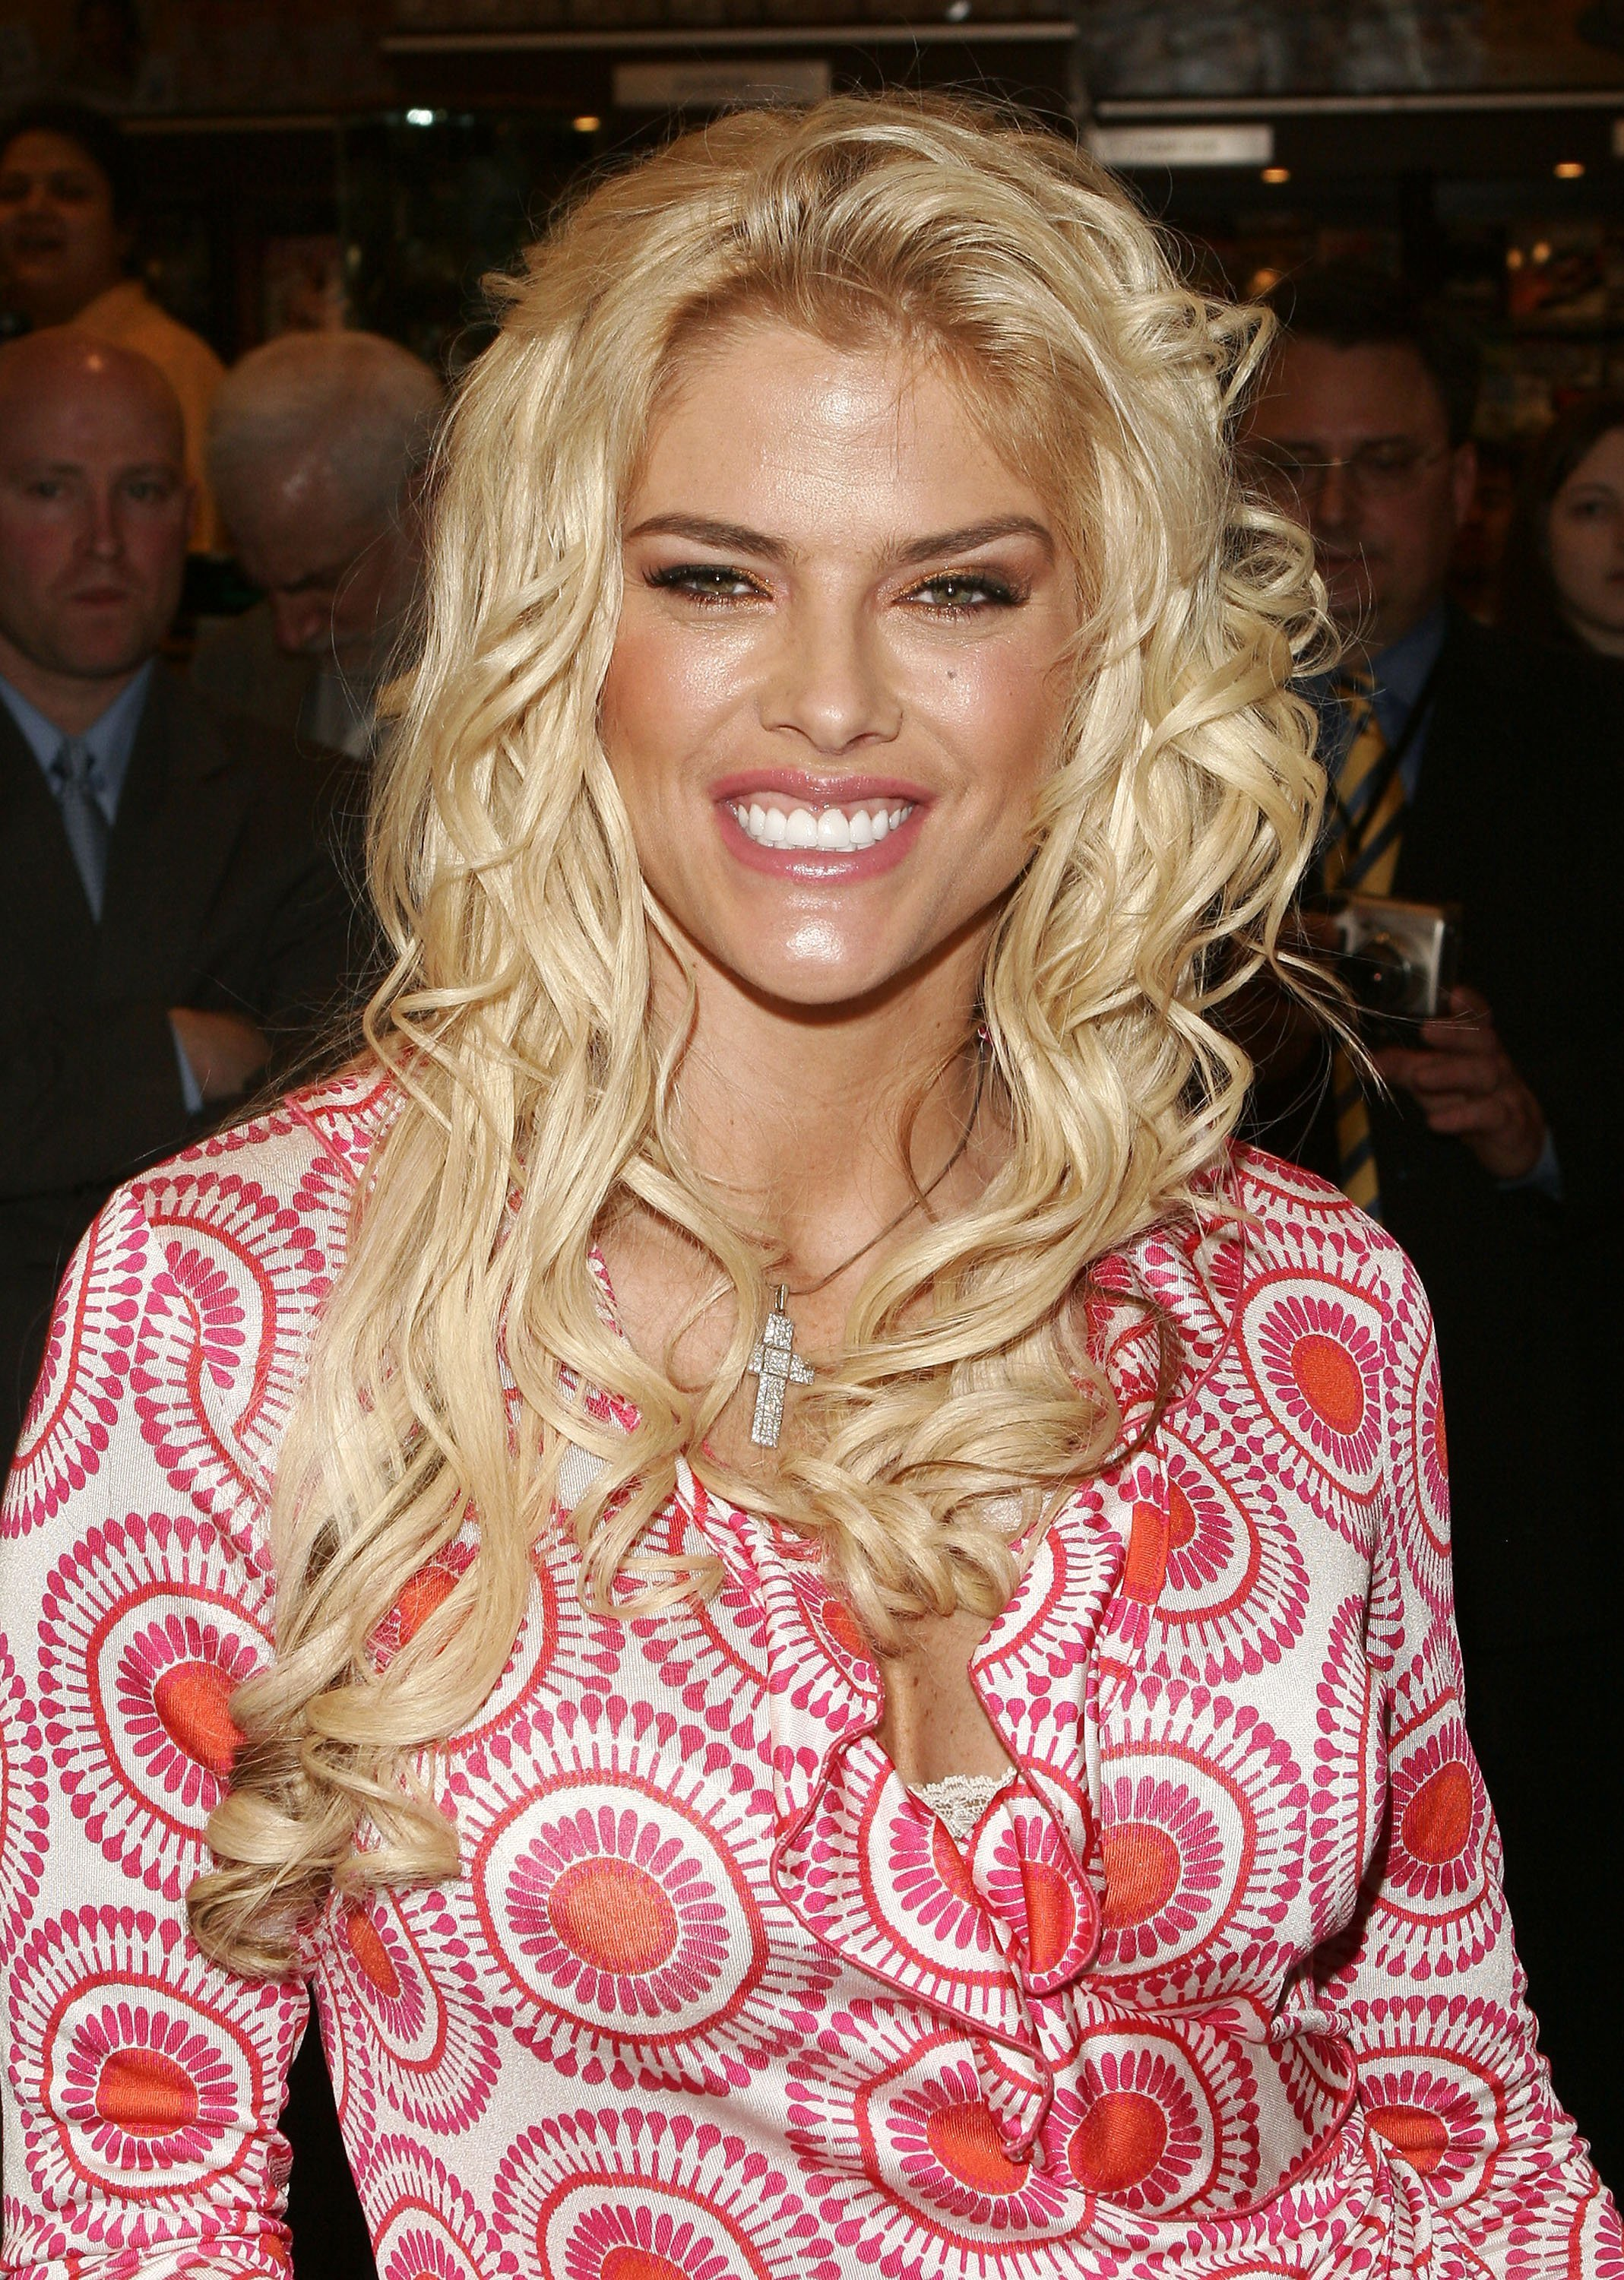 Model Anna Nicole | Getty Images